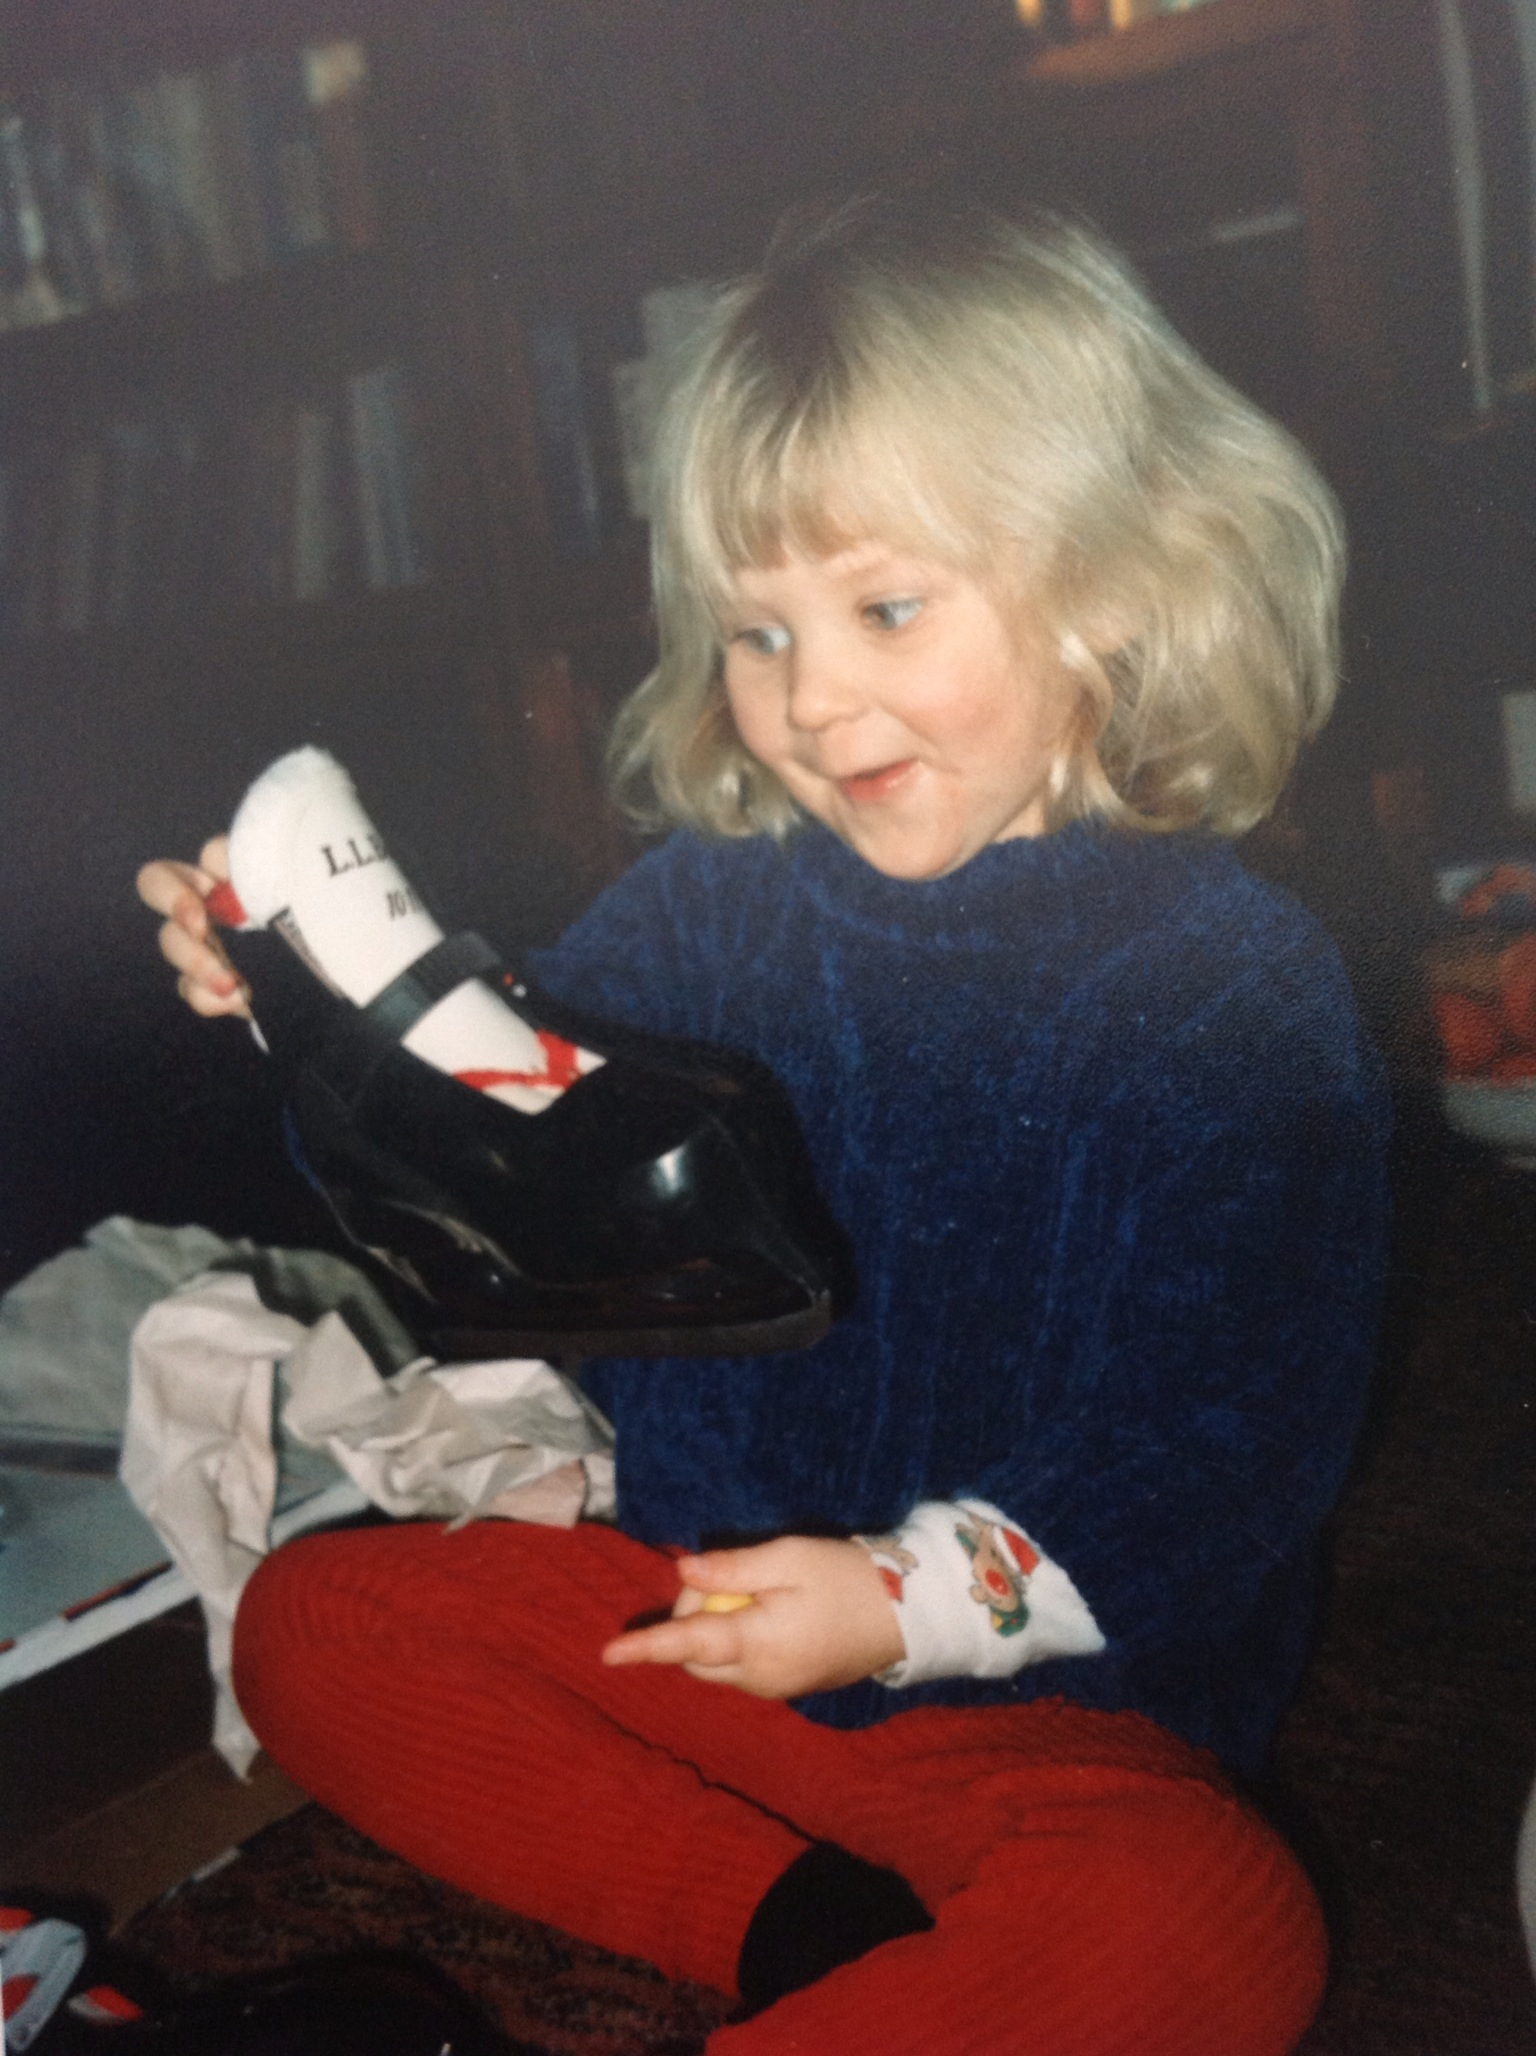 And, finally, where this whole show began: Ellie with her first pair of skates on Christmas morning in Surry, New Hamphire